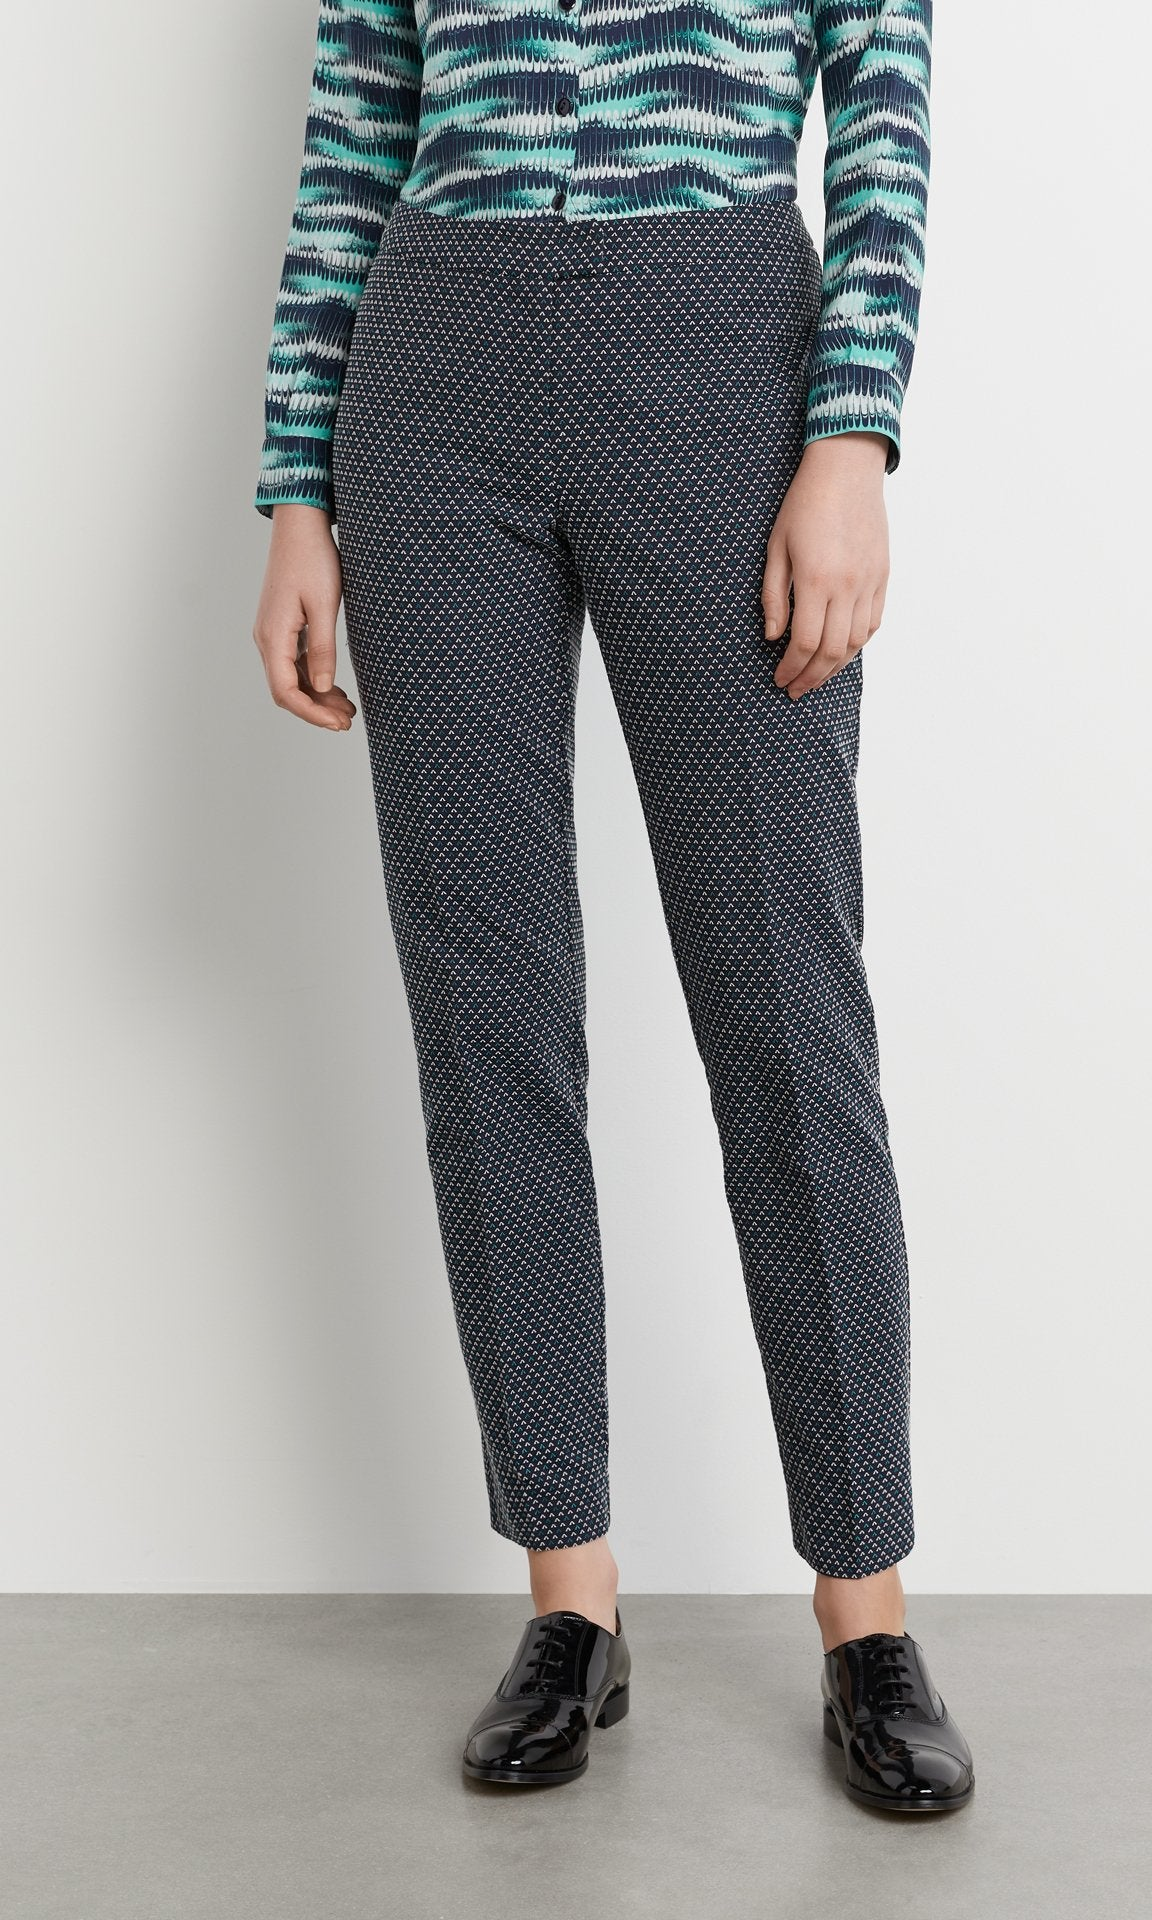 Sinclair Trouser - Navy/Teal